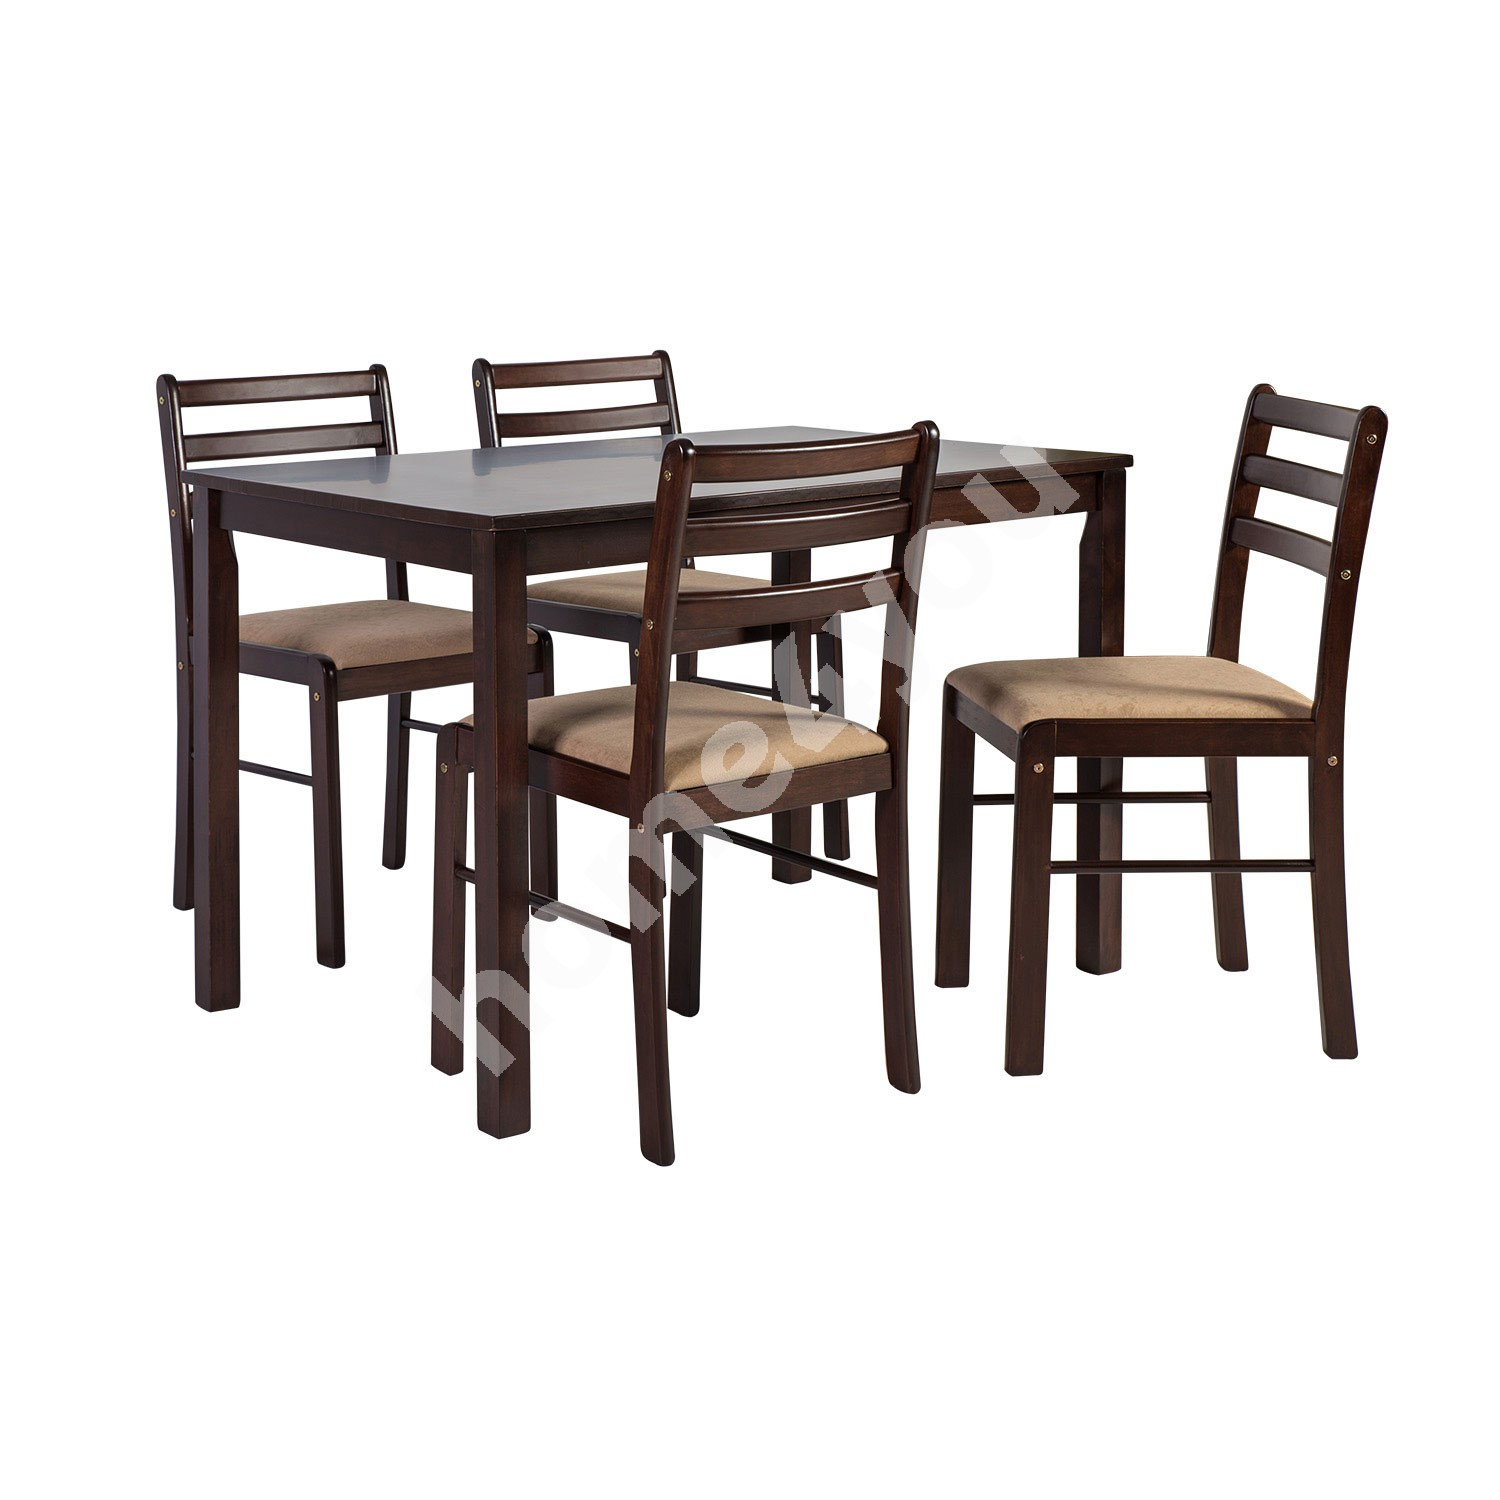 Dining set VINCENT with 4-chairs, 110x72xH75cm, wood: rubber wood, color: espresso, finish: lacquered